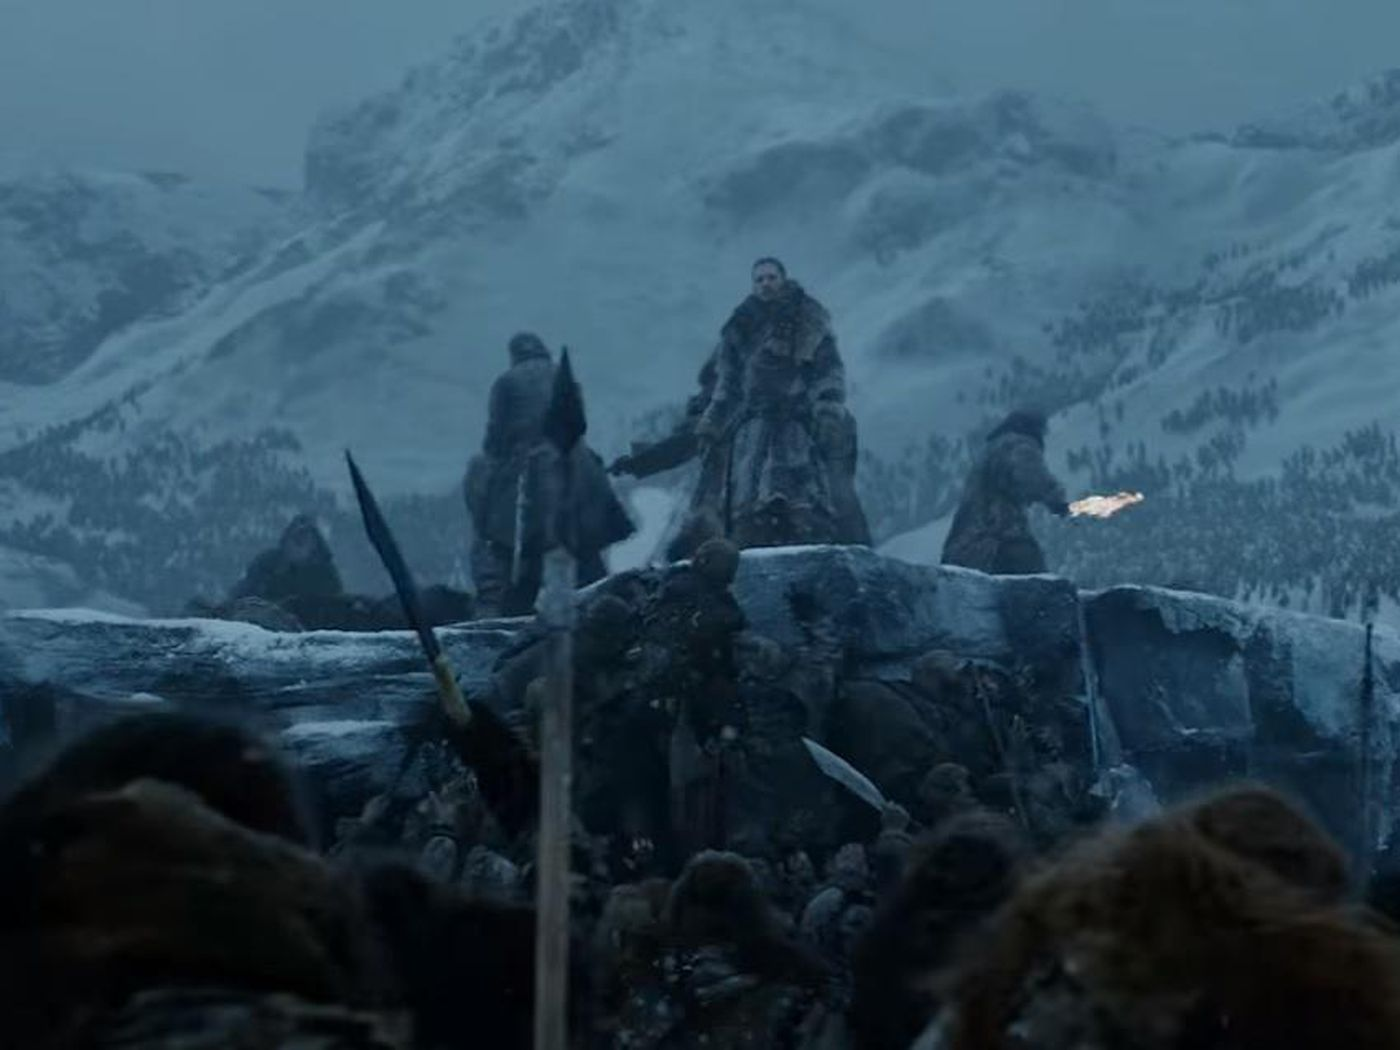 Game Of Thrones Next White Walker Battle Is Looming Here S What S Changed Since The First One Vox